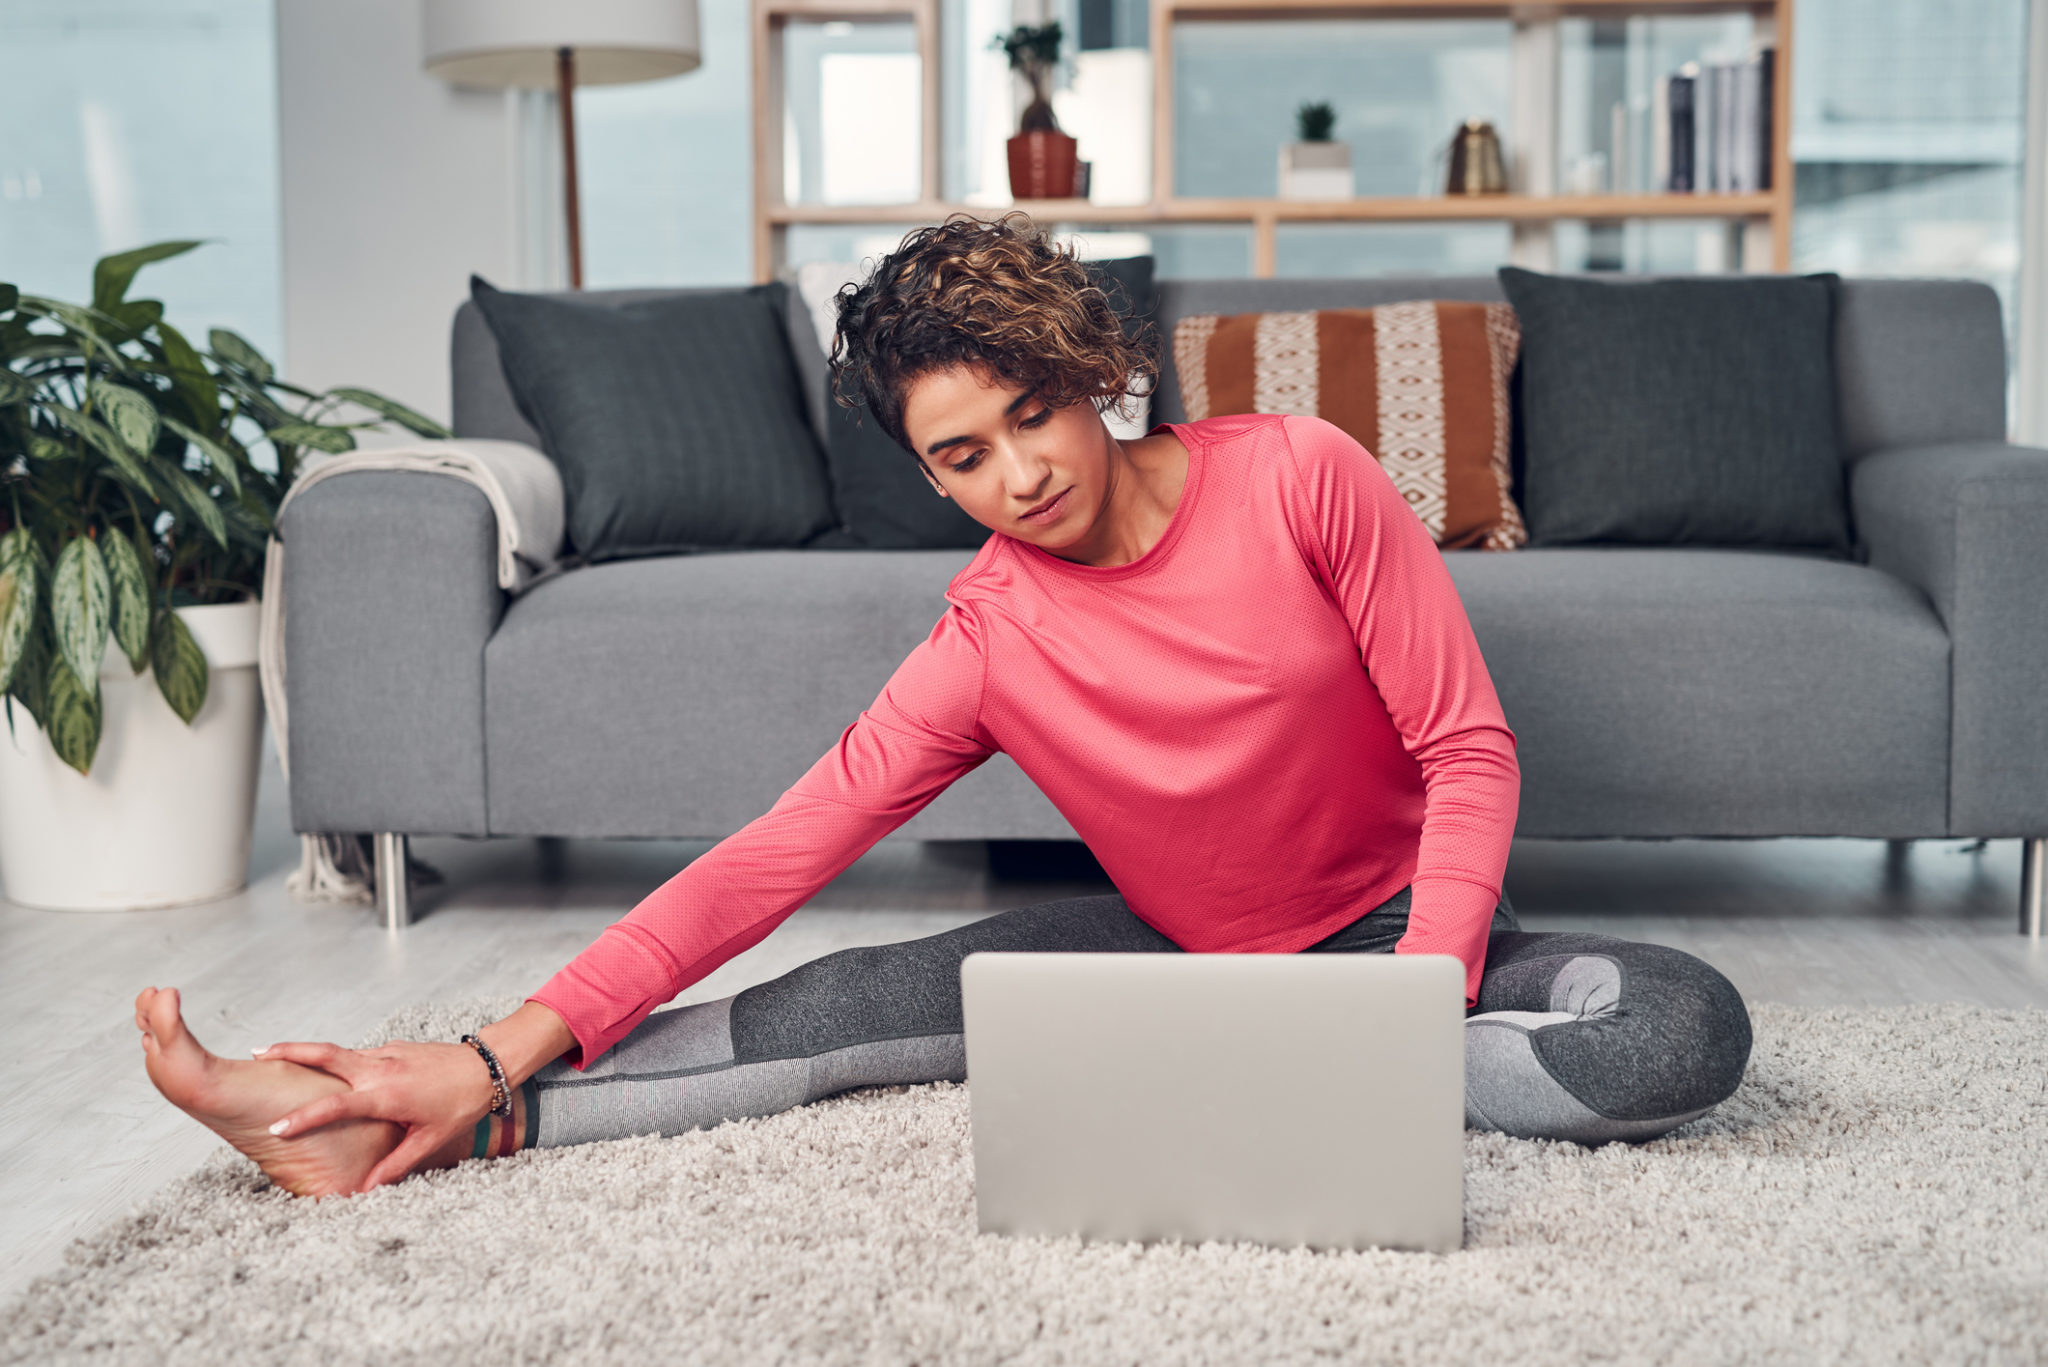 Full length shot of a young woman using a laptop while stretching in her living room